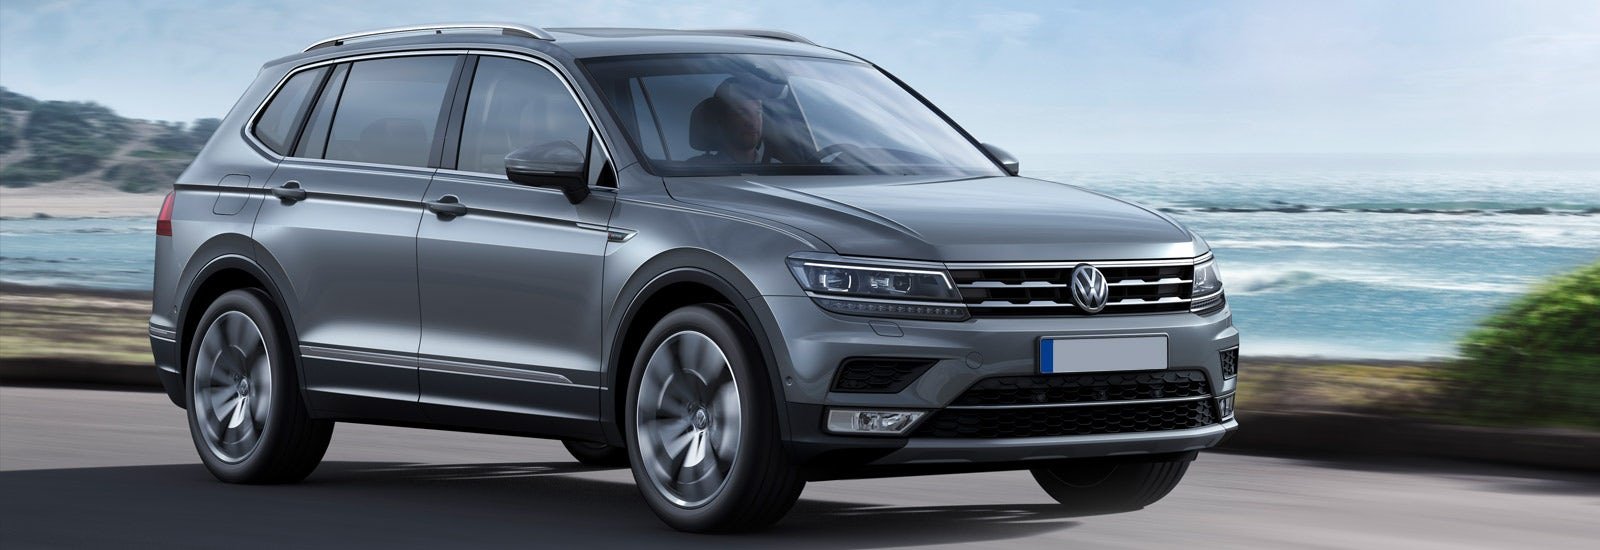 2017 VW Tiguan 7seater price specs release date  carwow